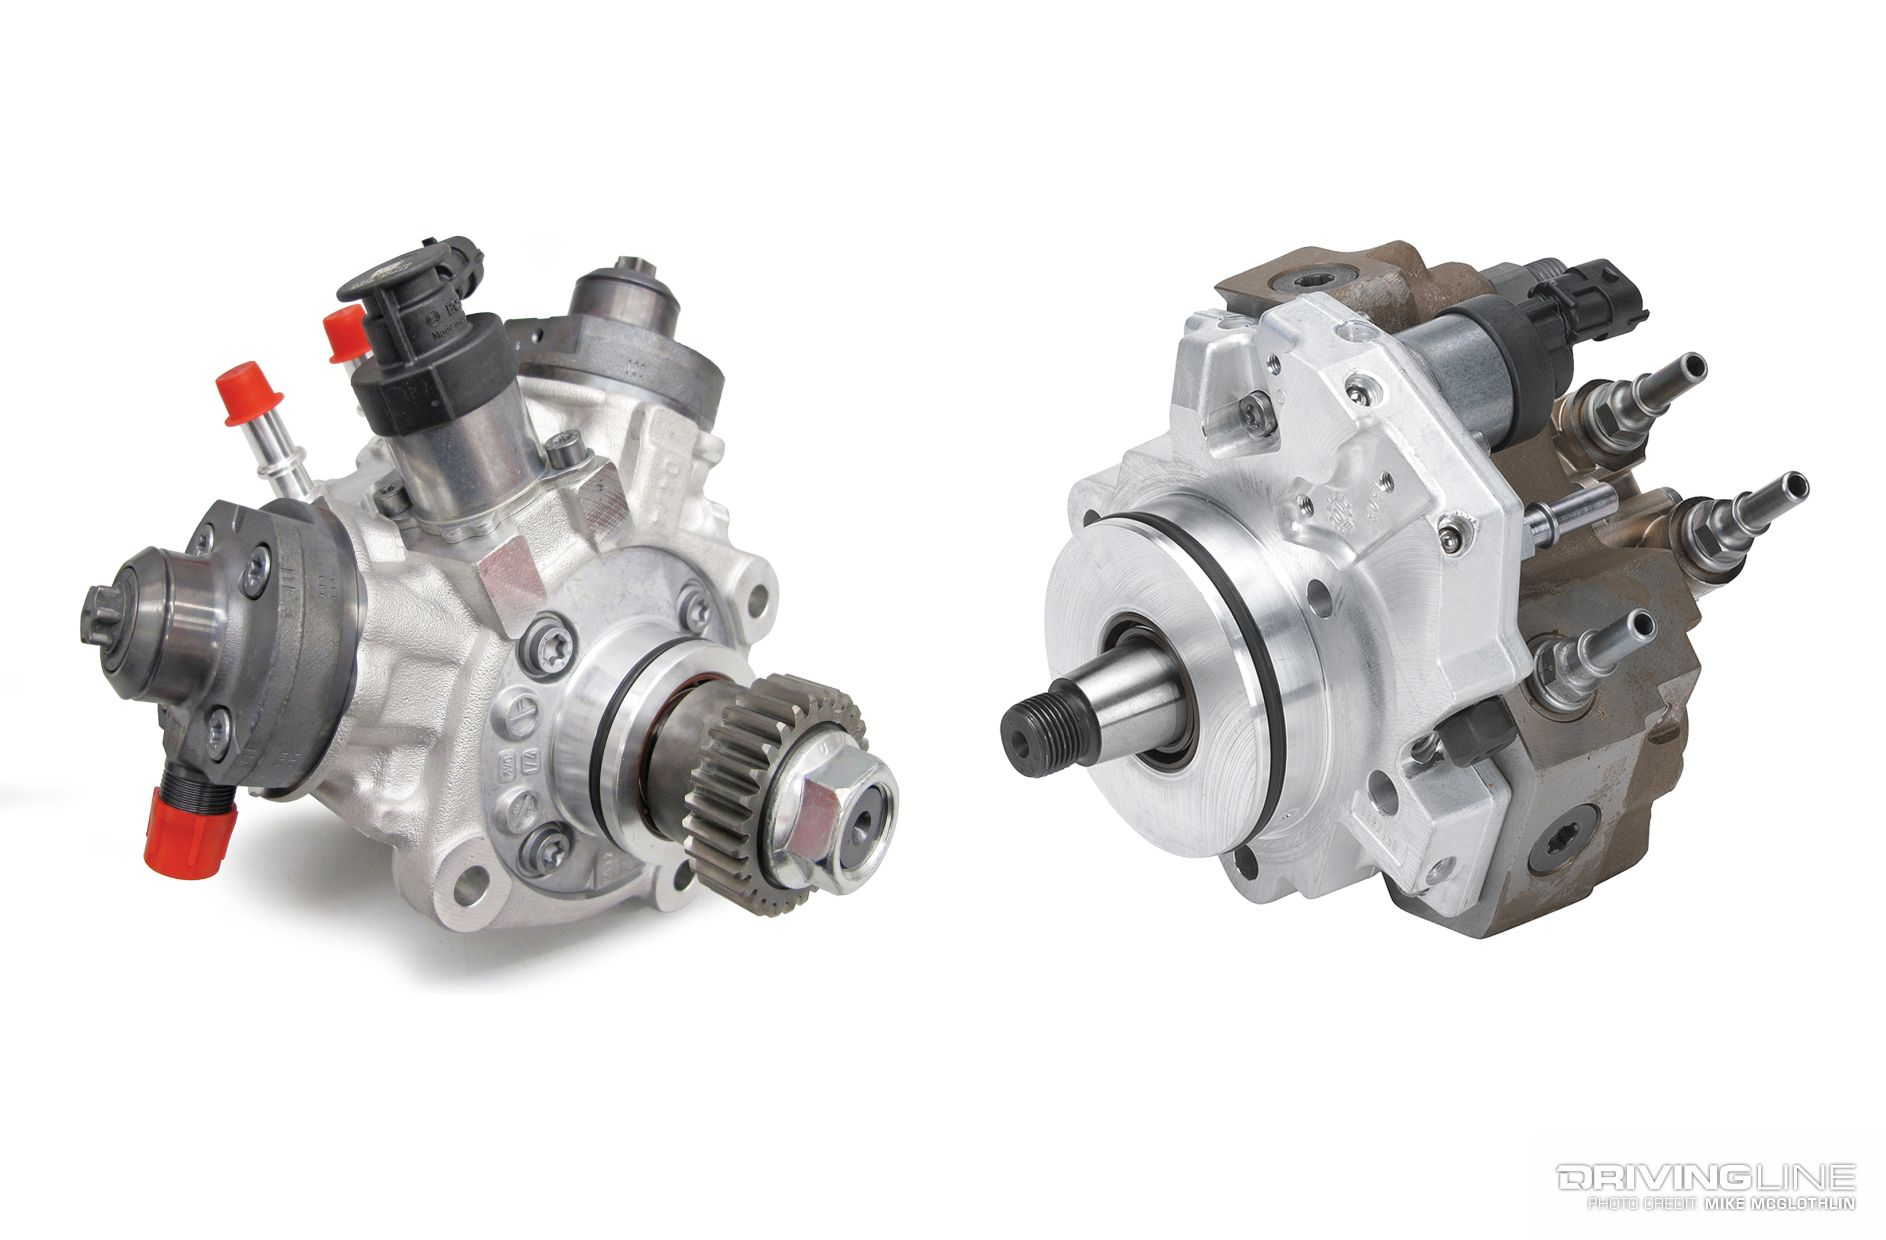 The advantages of running dual injection pumps on a diesel engine